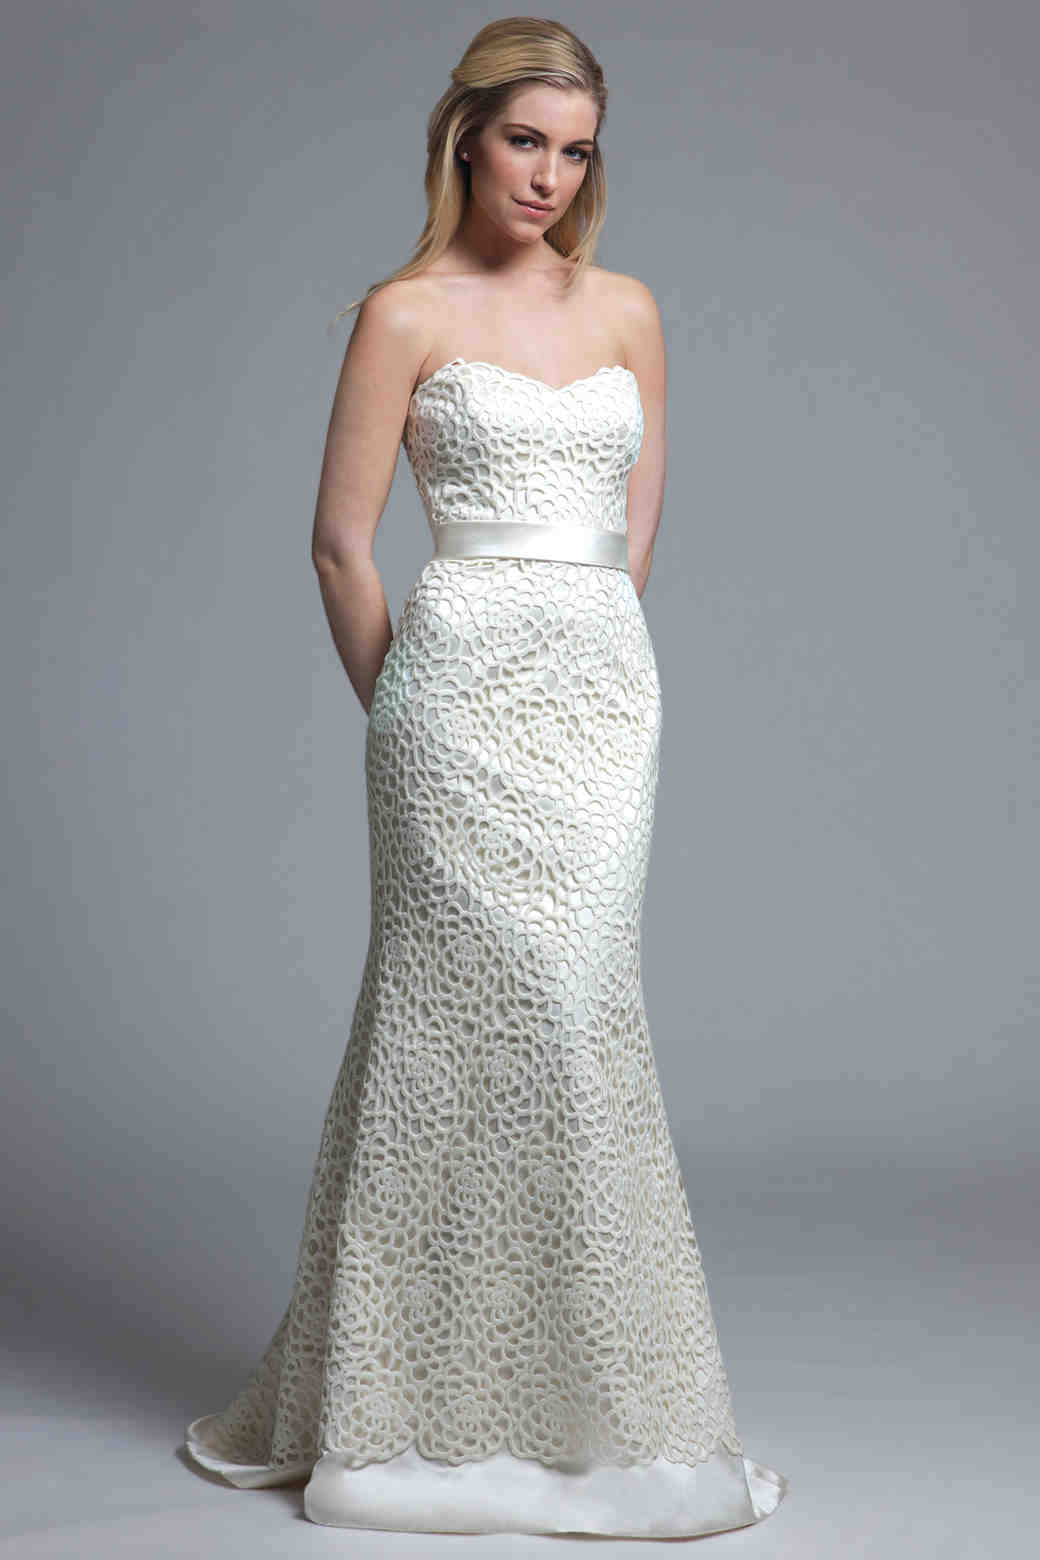 modern-trousseau-sp13-hope-v1-df.jpg